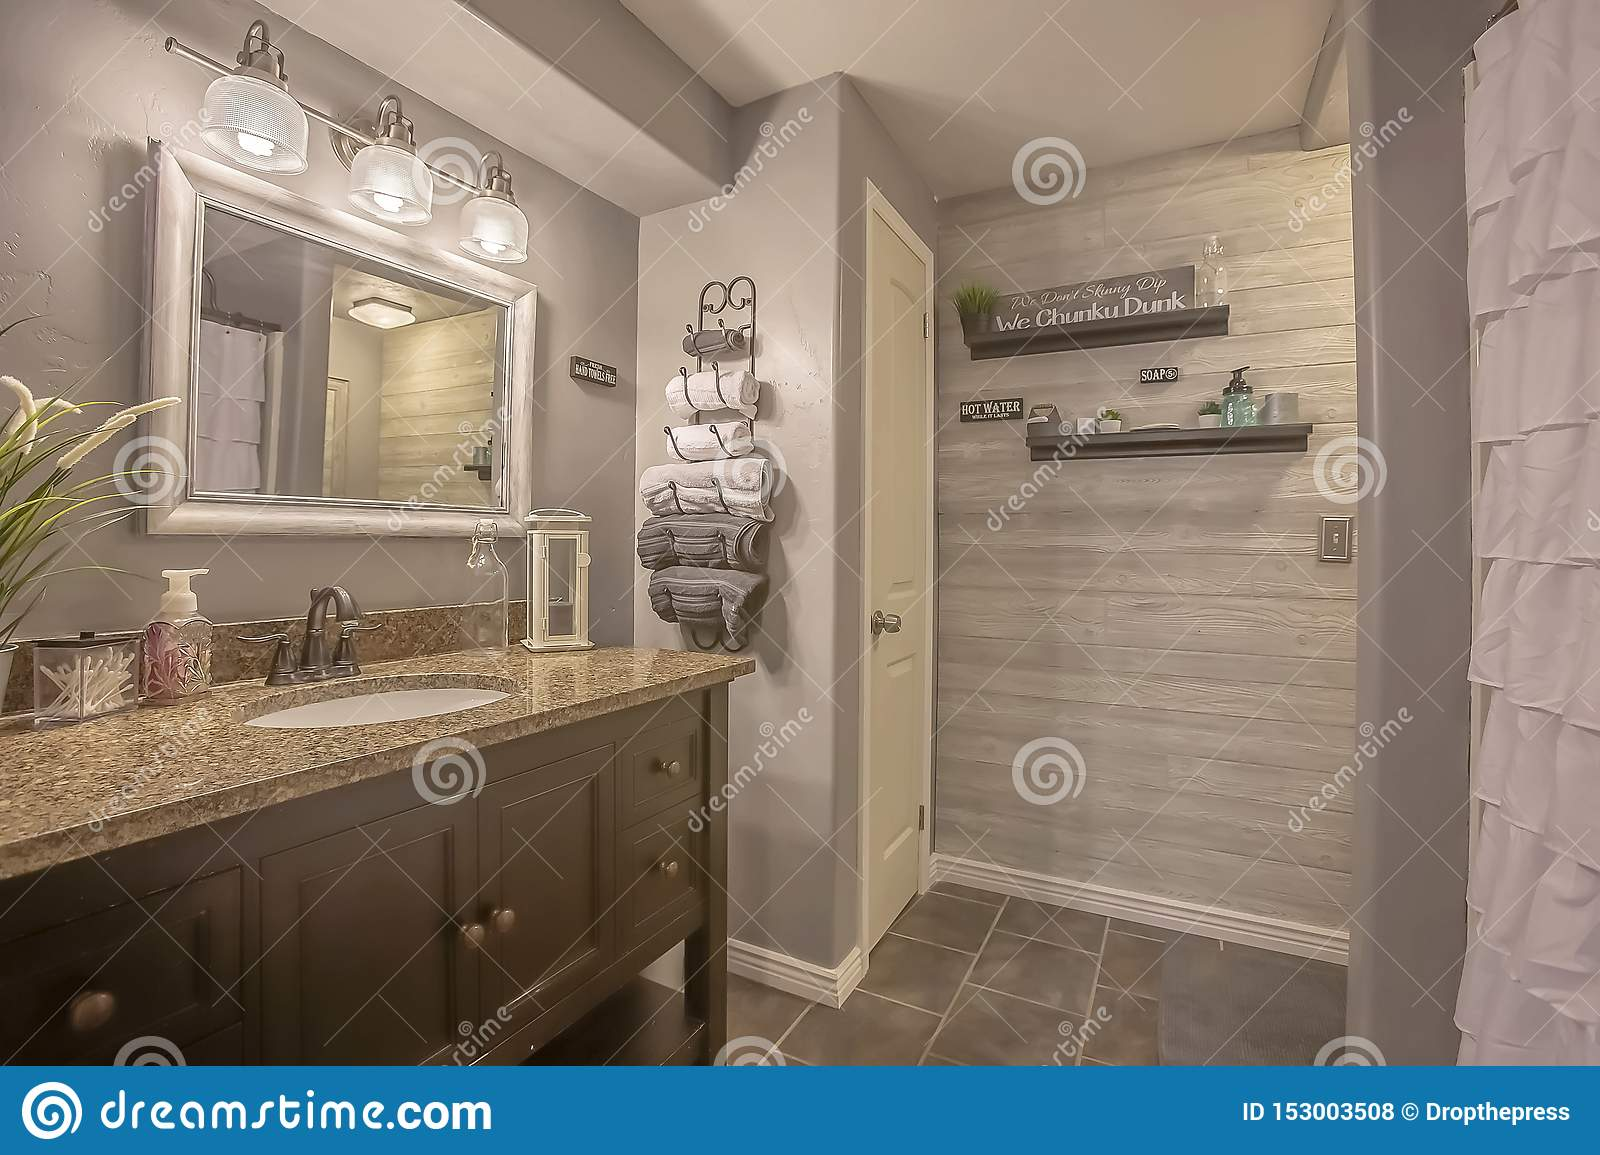 Mirror And Lamps Above The Vanity Inside A Bathroom With